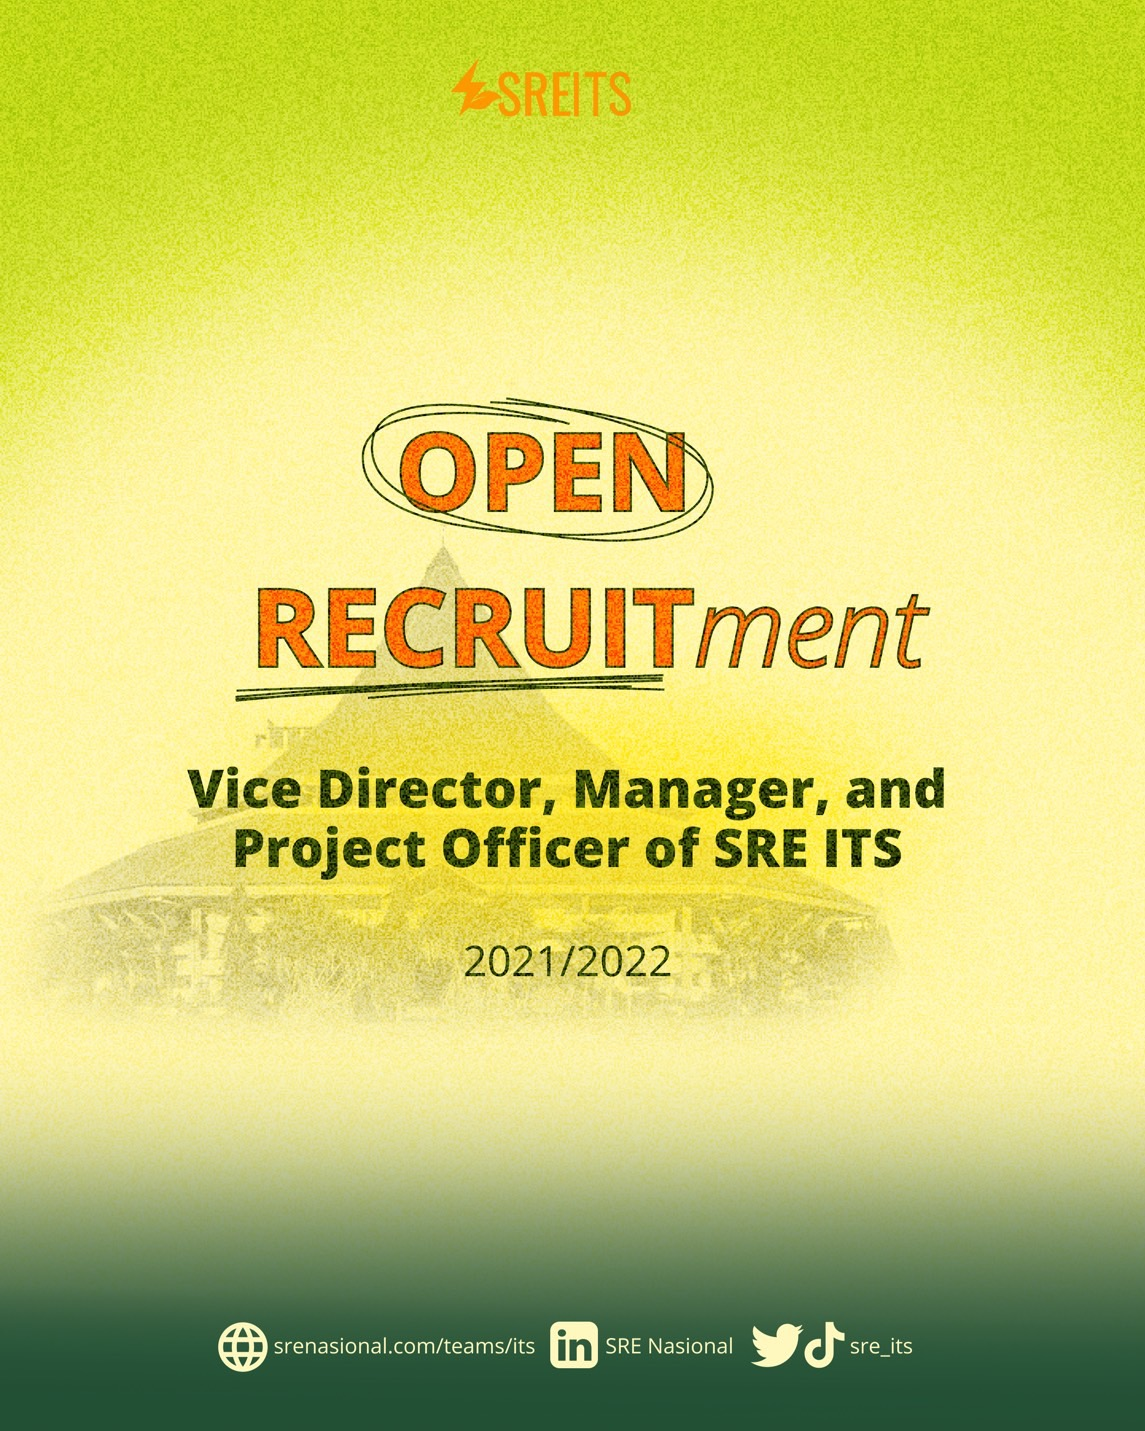 [SRE ITS 2021/2022 IS OFFICIALLY RECRUITING!]